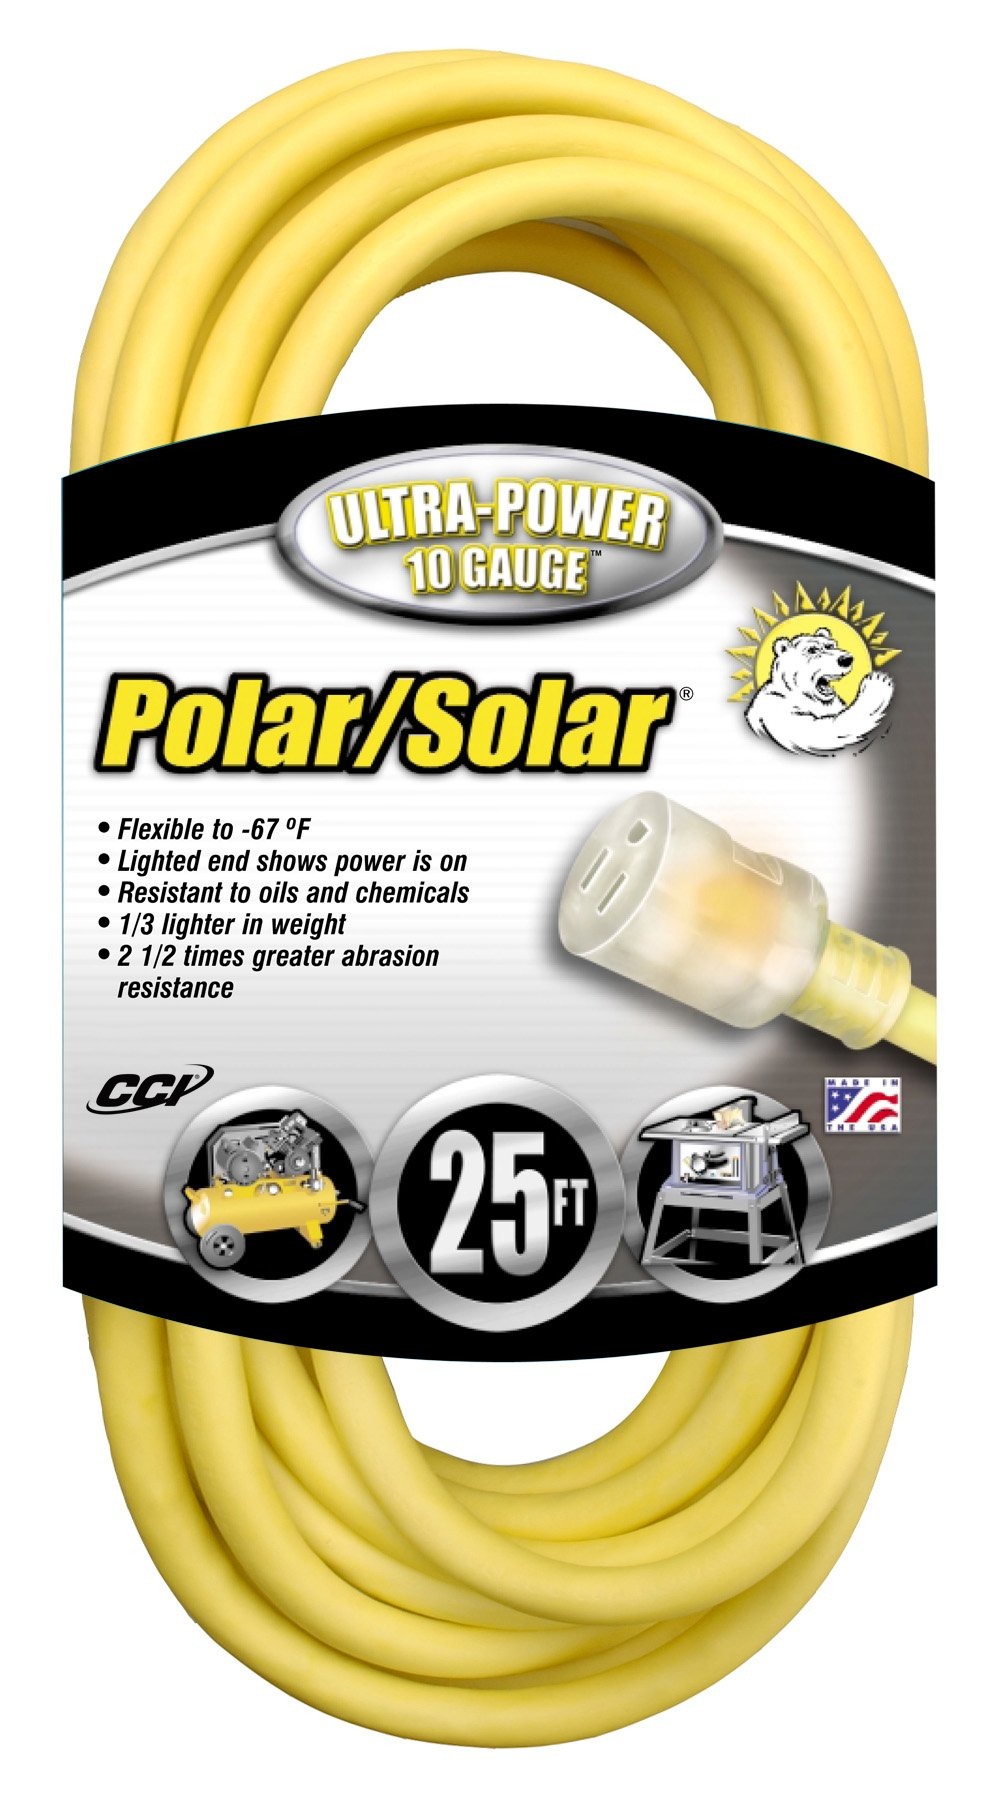 Polar/Solar 1787 10/3 15-Amp SJEO Outdoor Extension Cord with Lighted End, 25-Foot